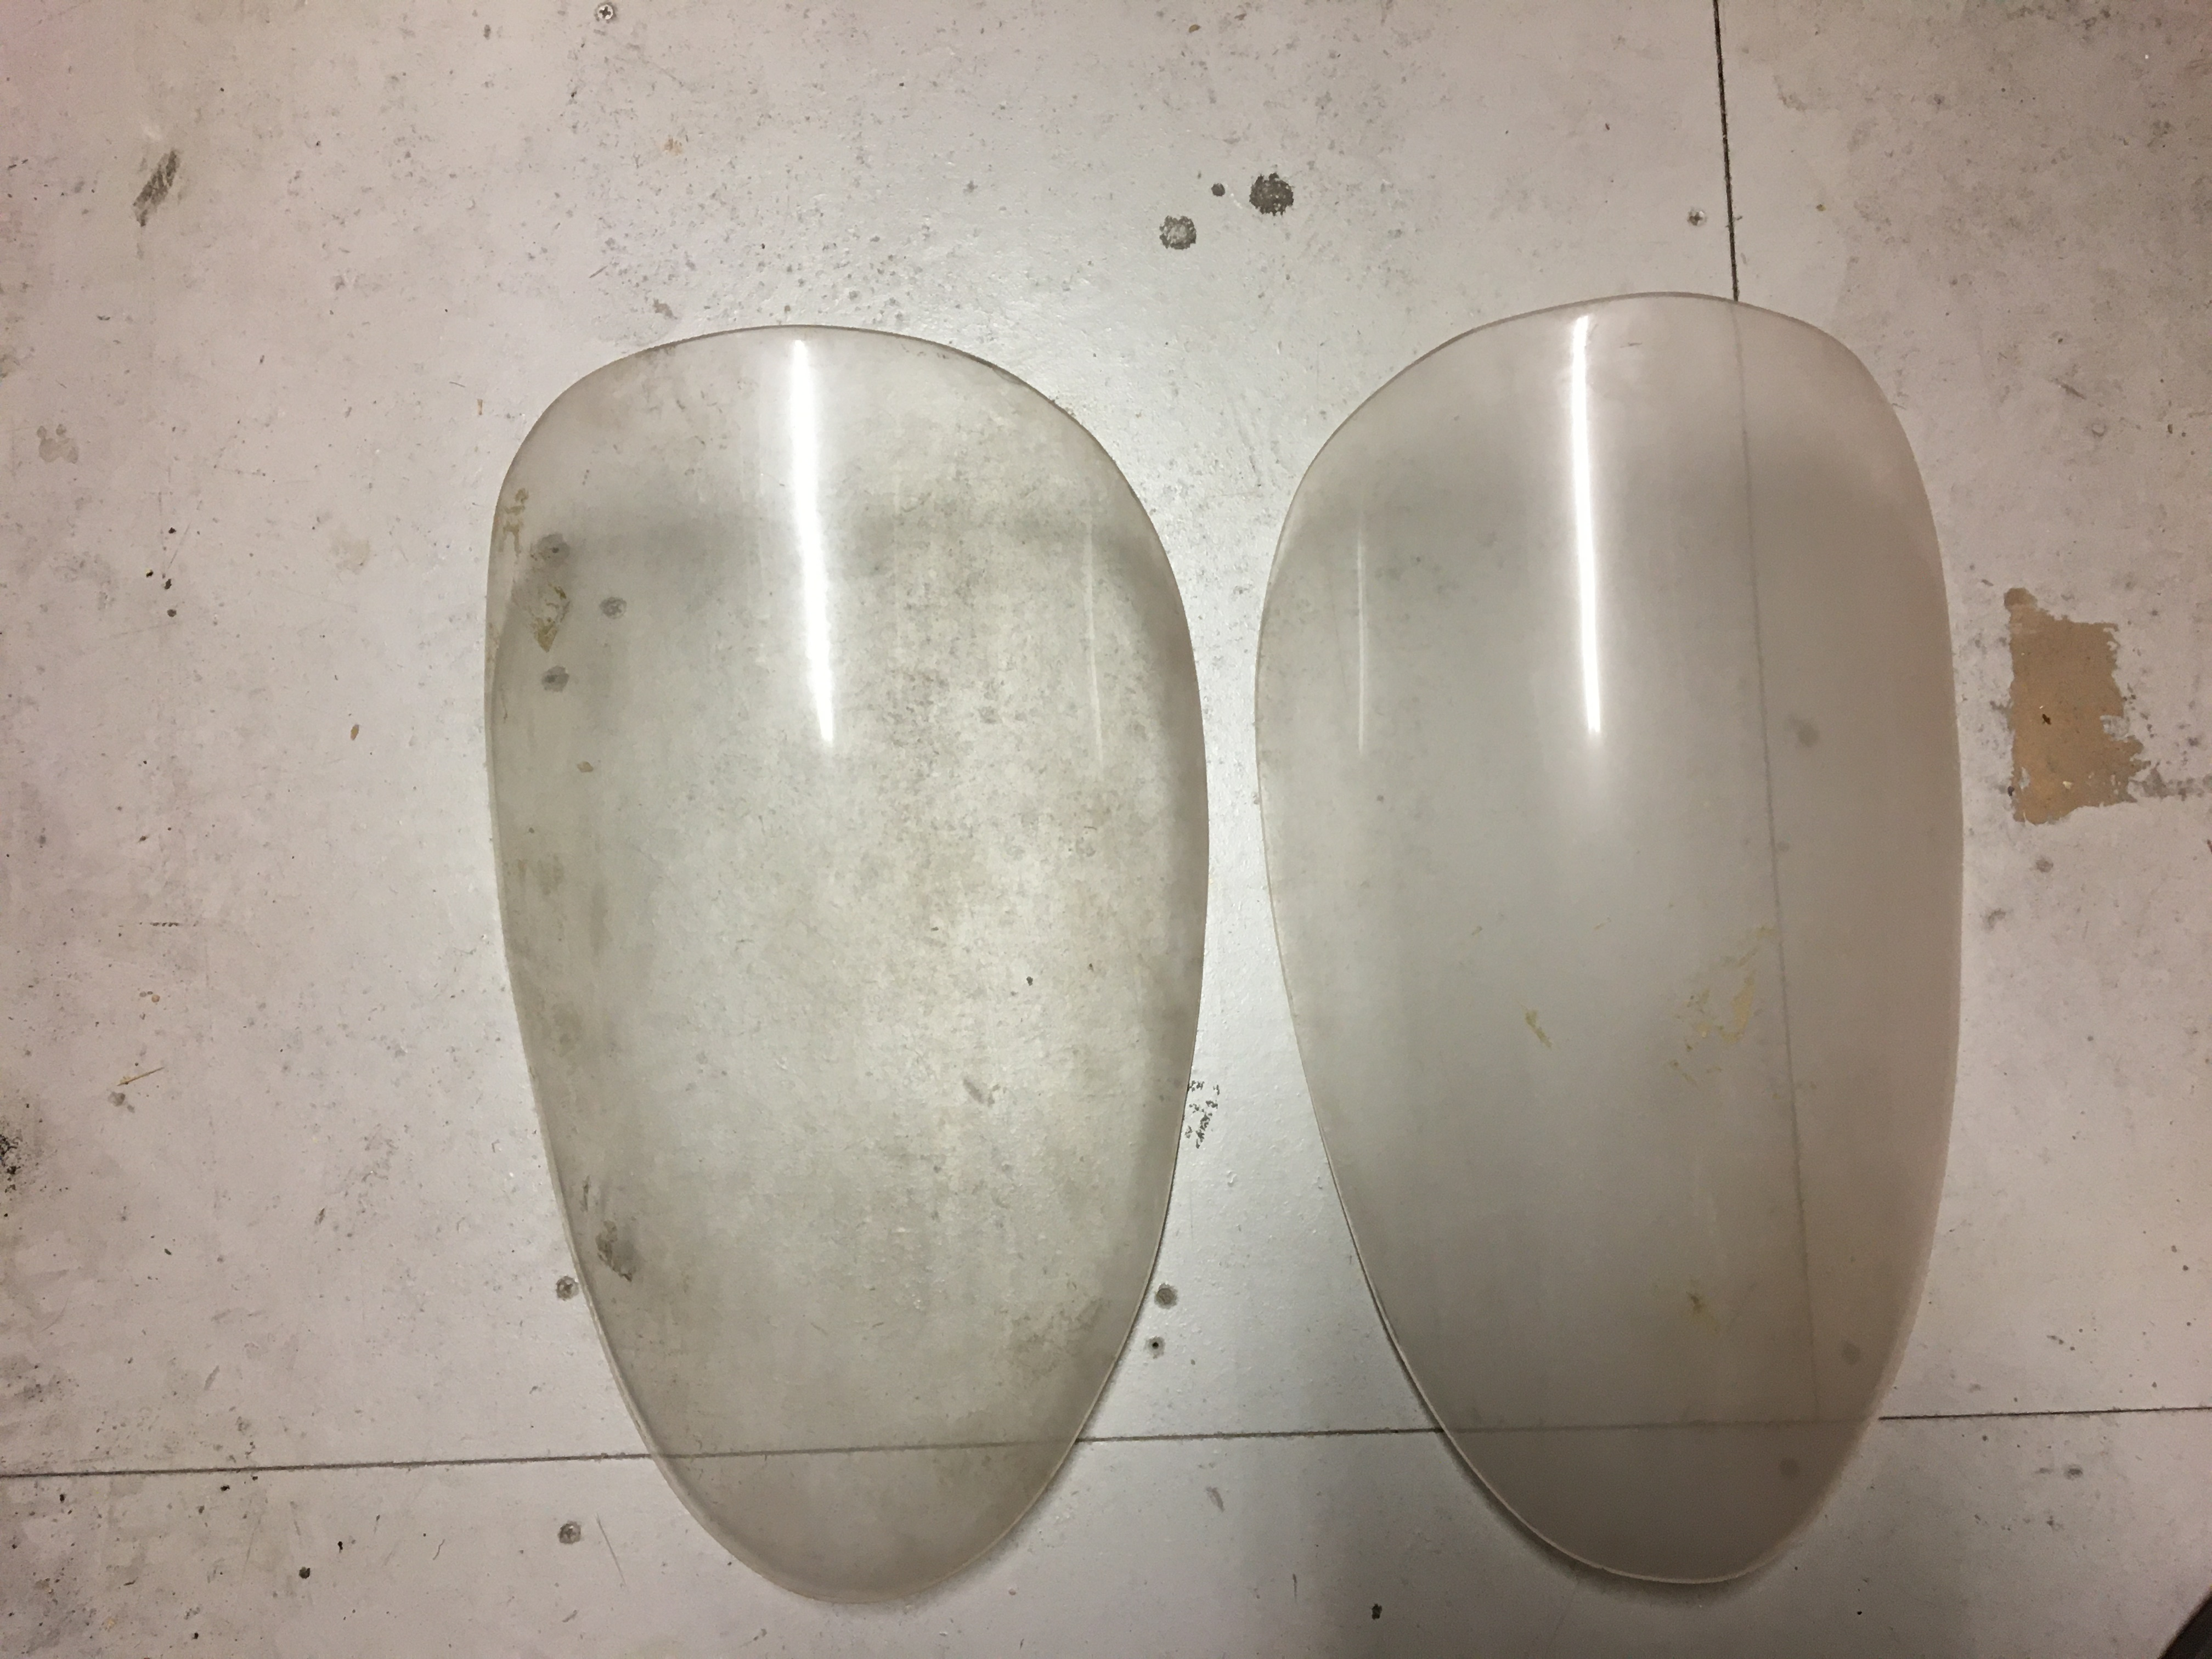 Dino 246 GT/GTS Front Headlight Plexi Cover Set